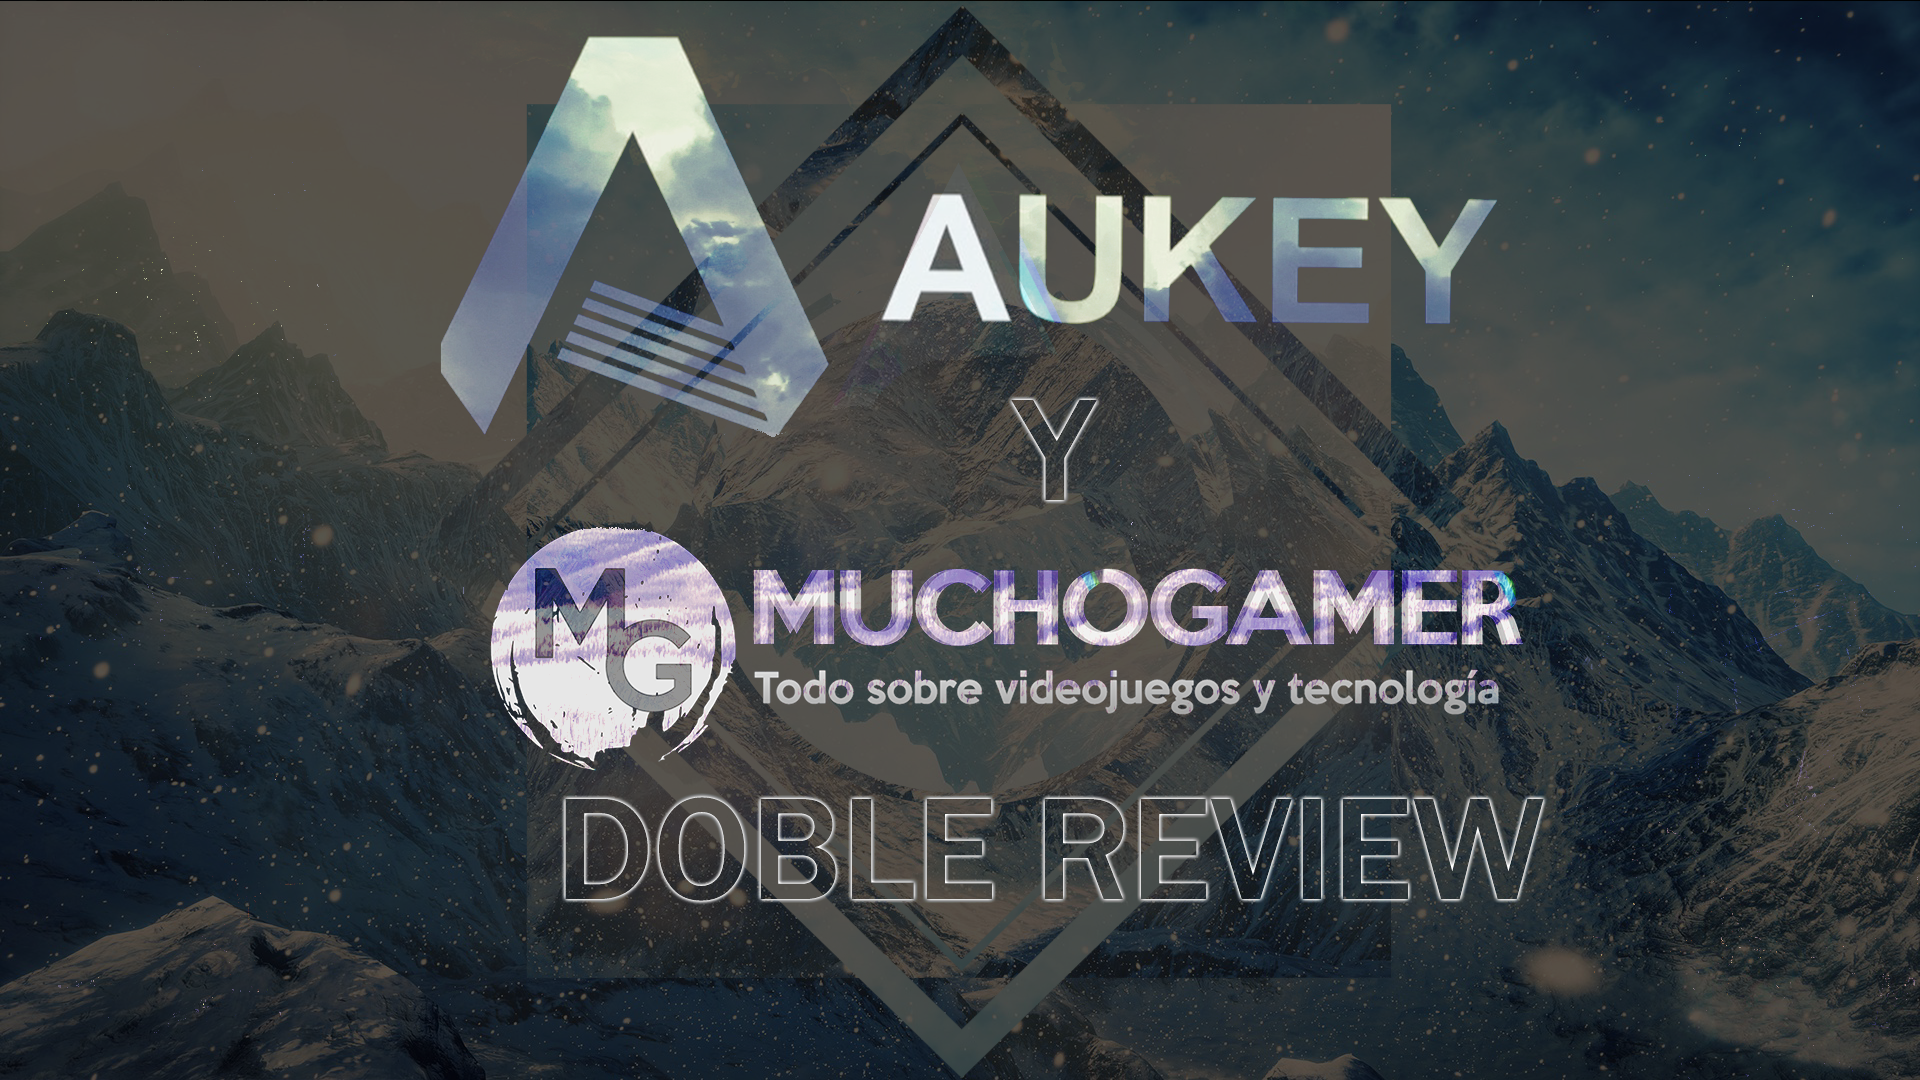 Doble Review de Aukey